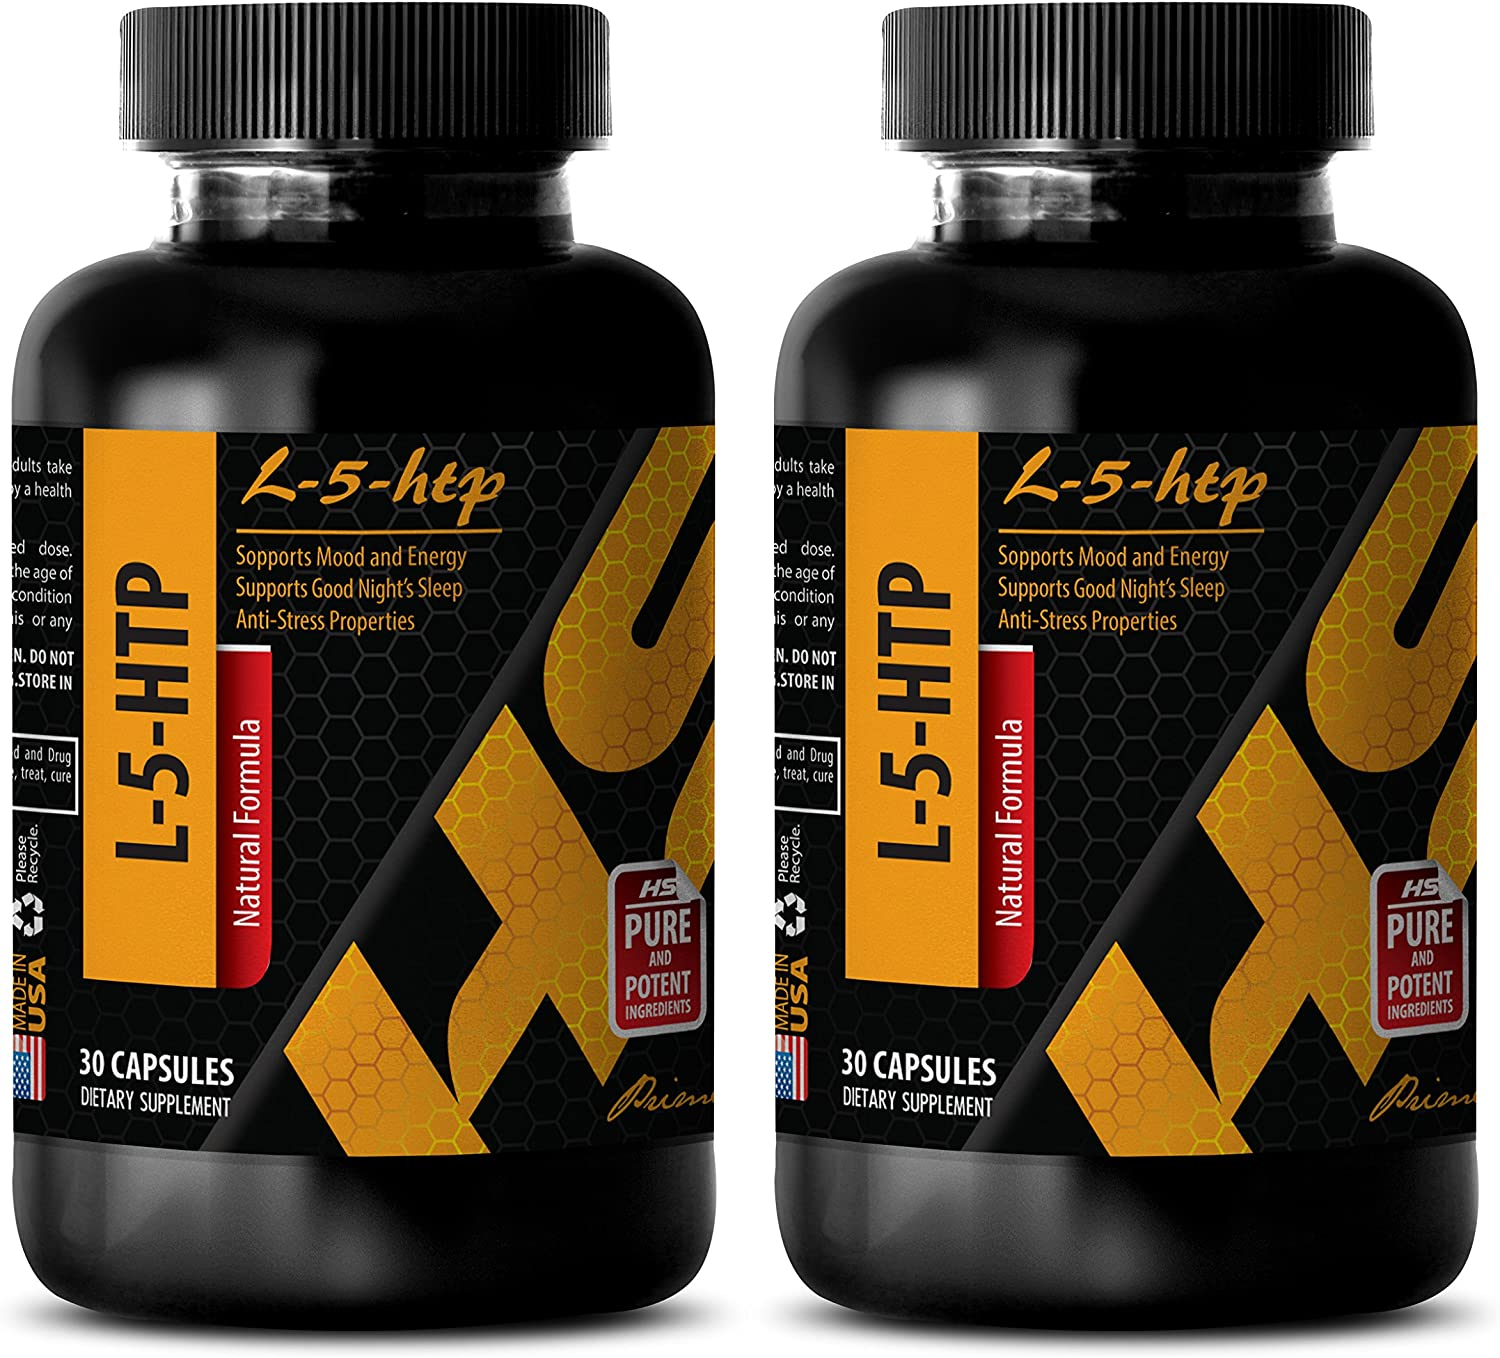 Mood boost natural supplement for stress and anxiety relief - L-5-HTP - 5-htp vitamin c - 2 Bottles 60 Capsules